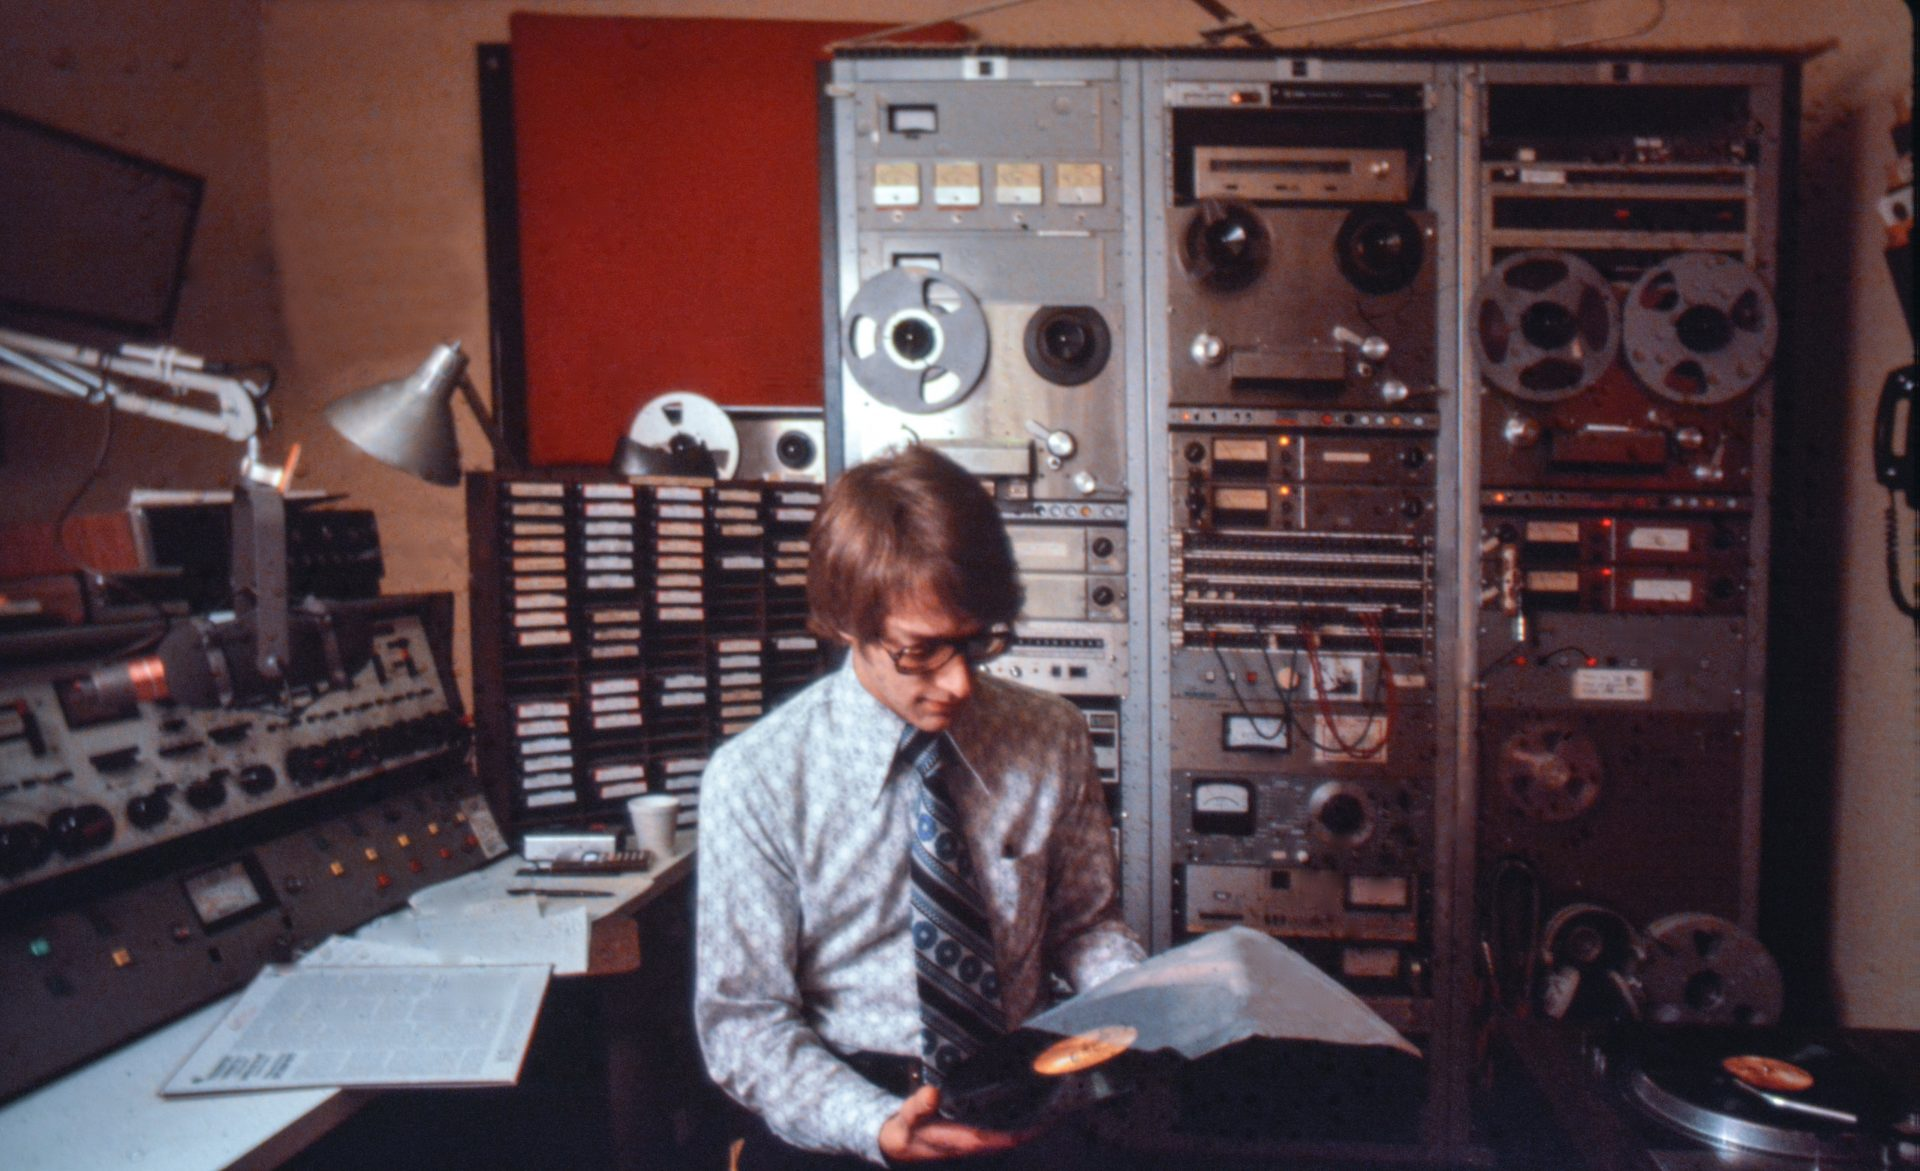 David Ginder, WITF Music Director from 1978 – 1985, selects the next classical tune to air on WITF FM, from the Hershey Community Building circa 1979.